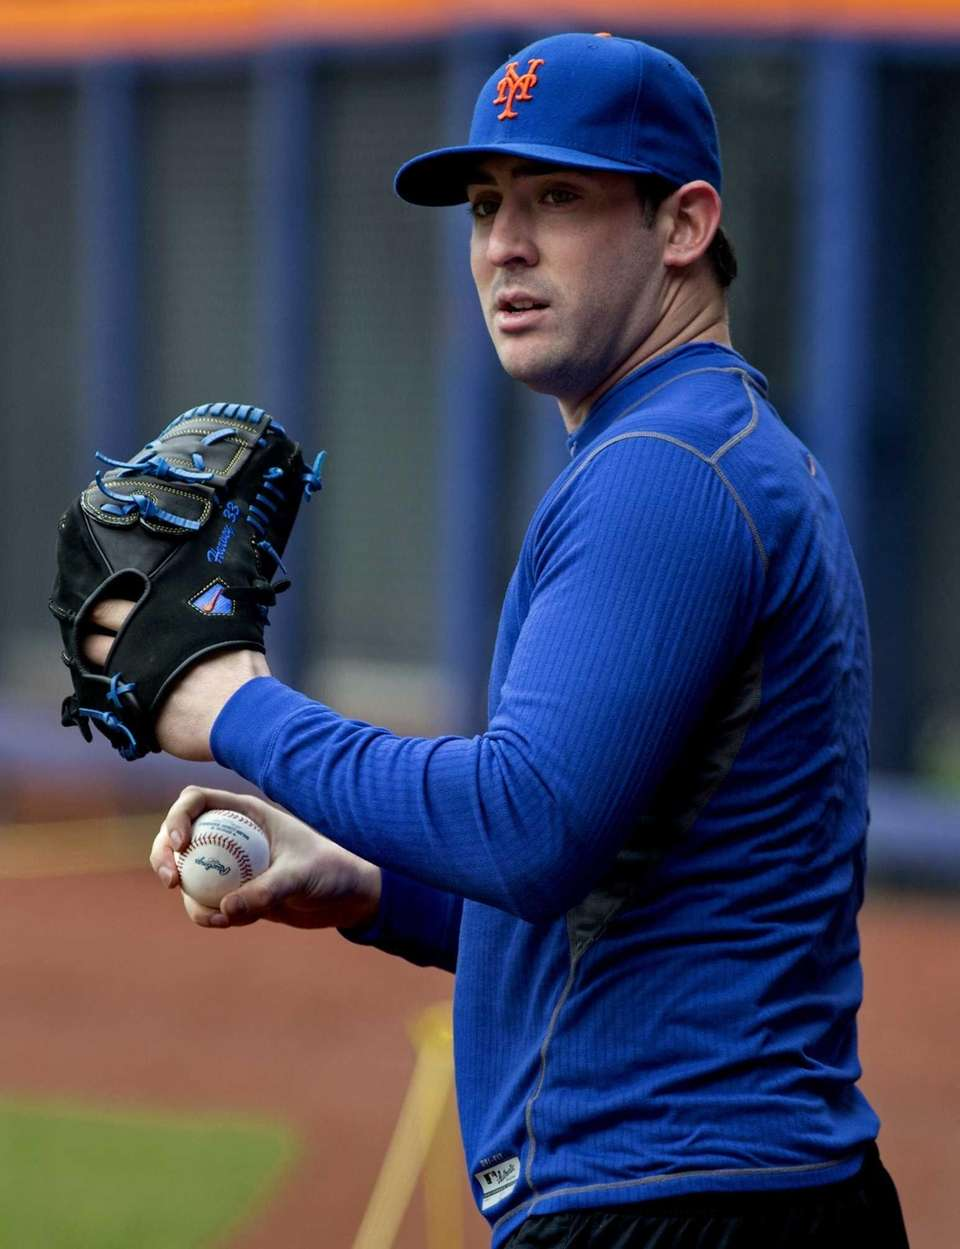 Mets starting pitcher Matt Harvey works out on